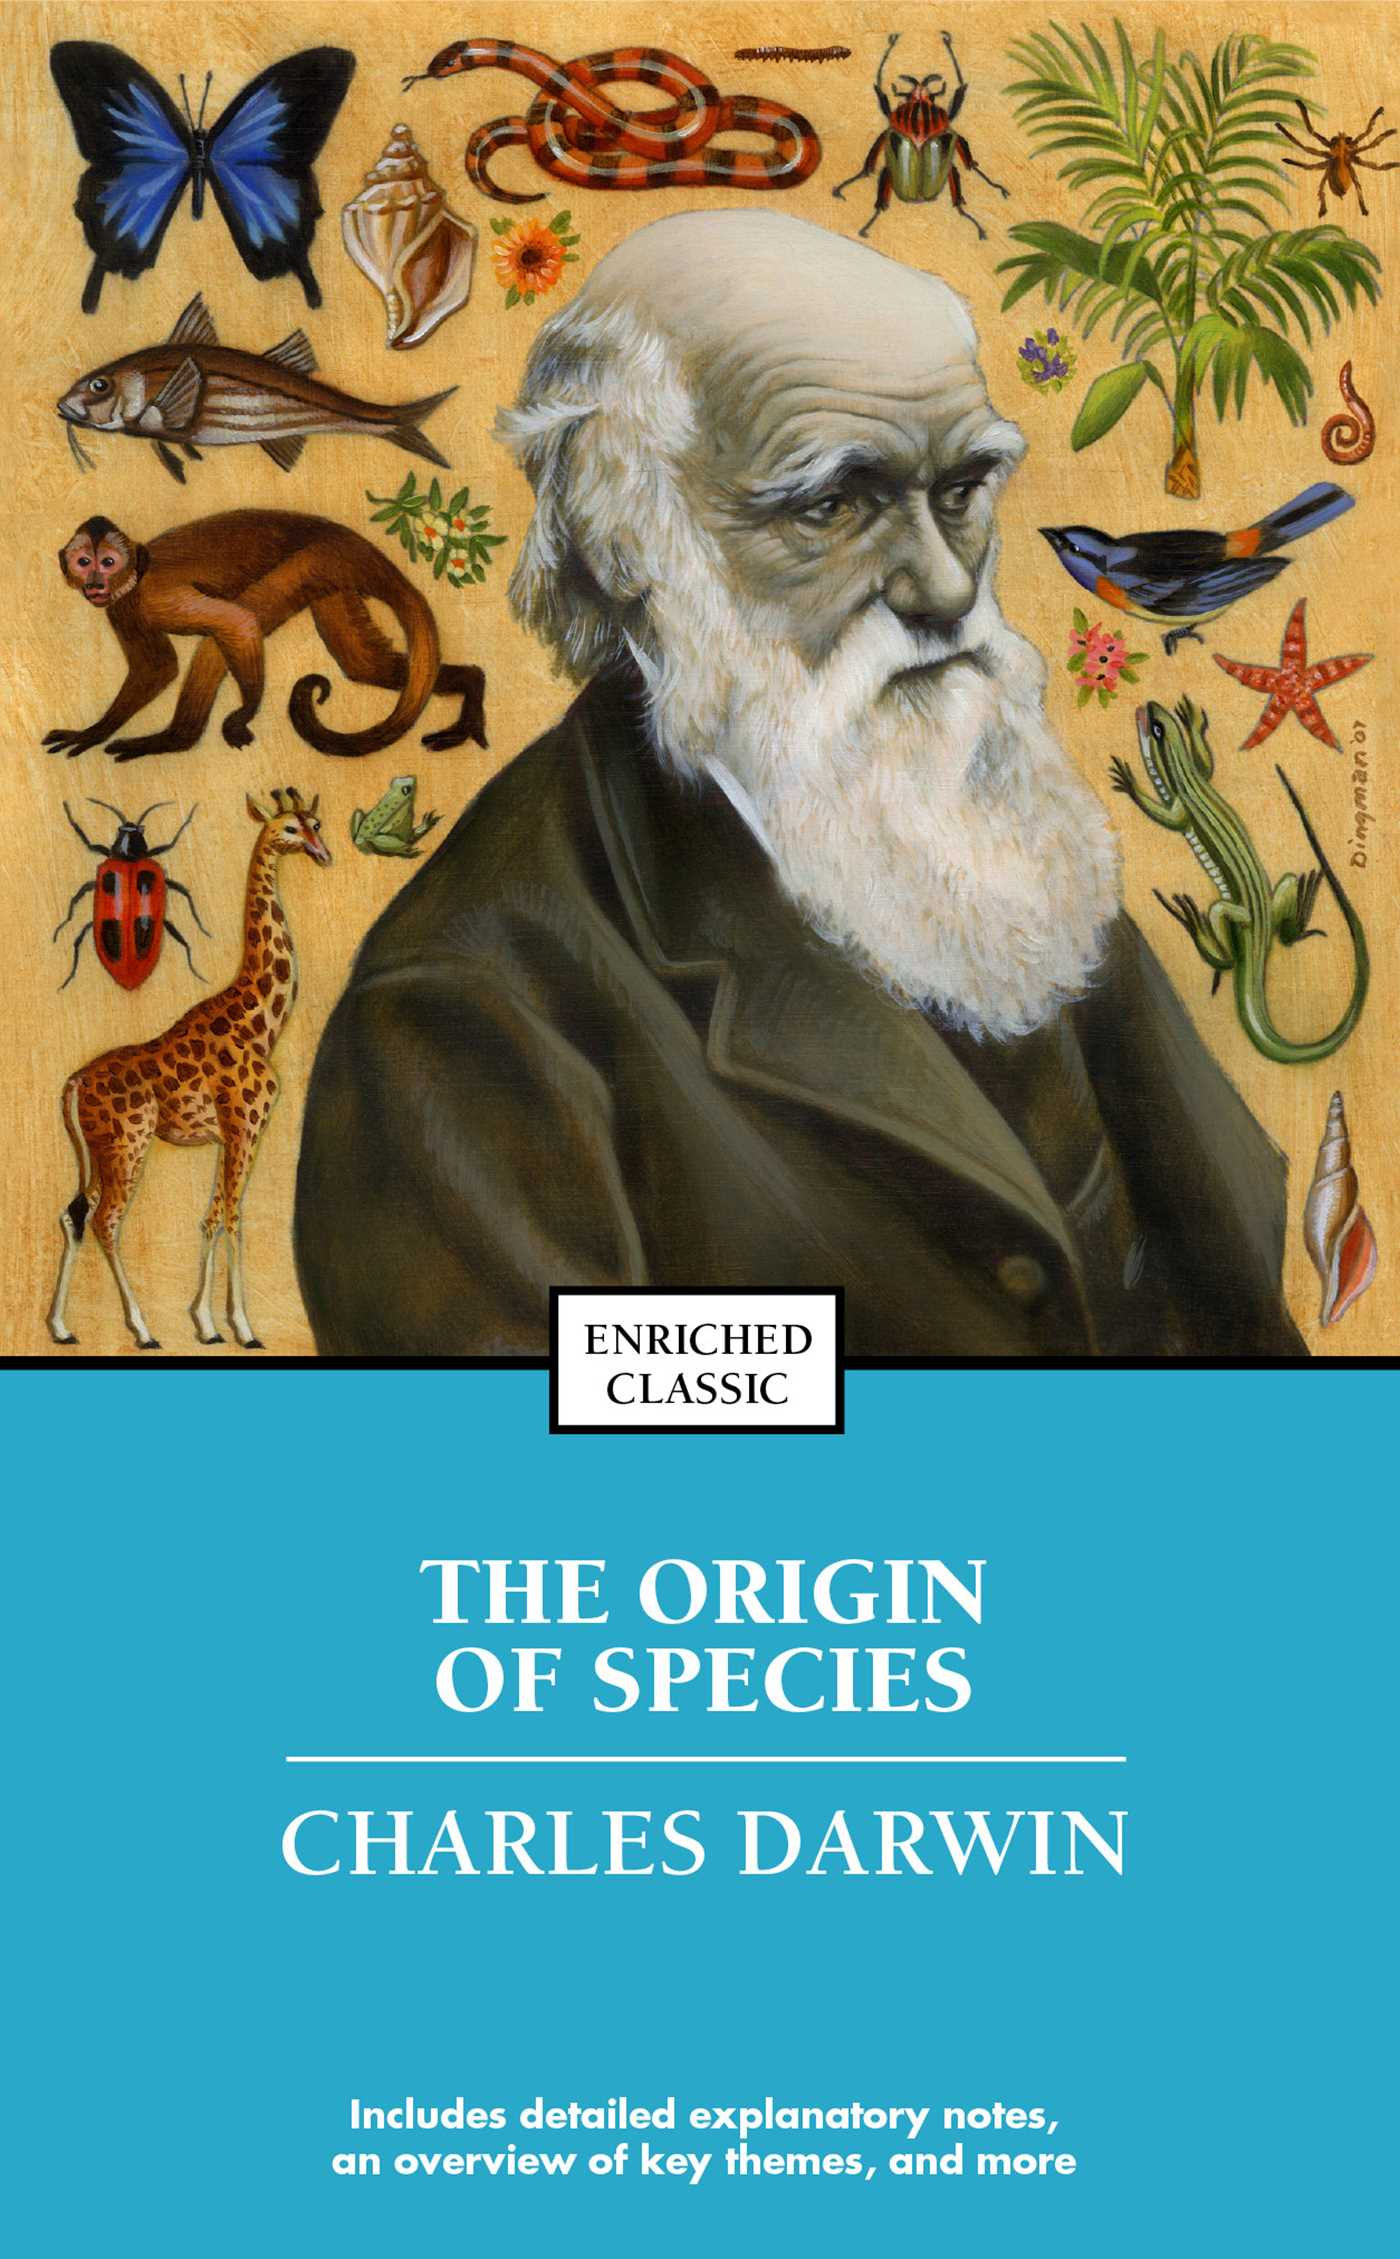 a look at the origin of species by charles darwin Charles darwin had looked into the eye of the storm, and found something revolutionary in november, 1859, darwin published the origin of species in which he proposed his ideas of the origin of an allopolyploid begins when two different species breed and combine their chromosomes.